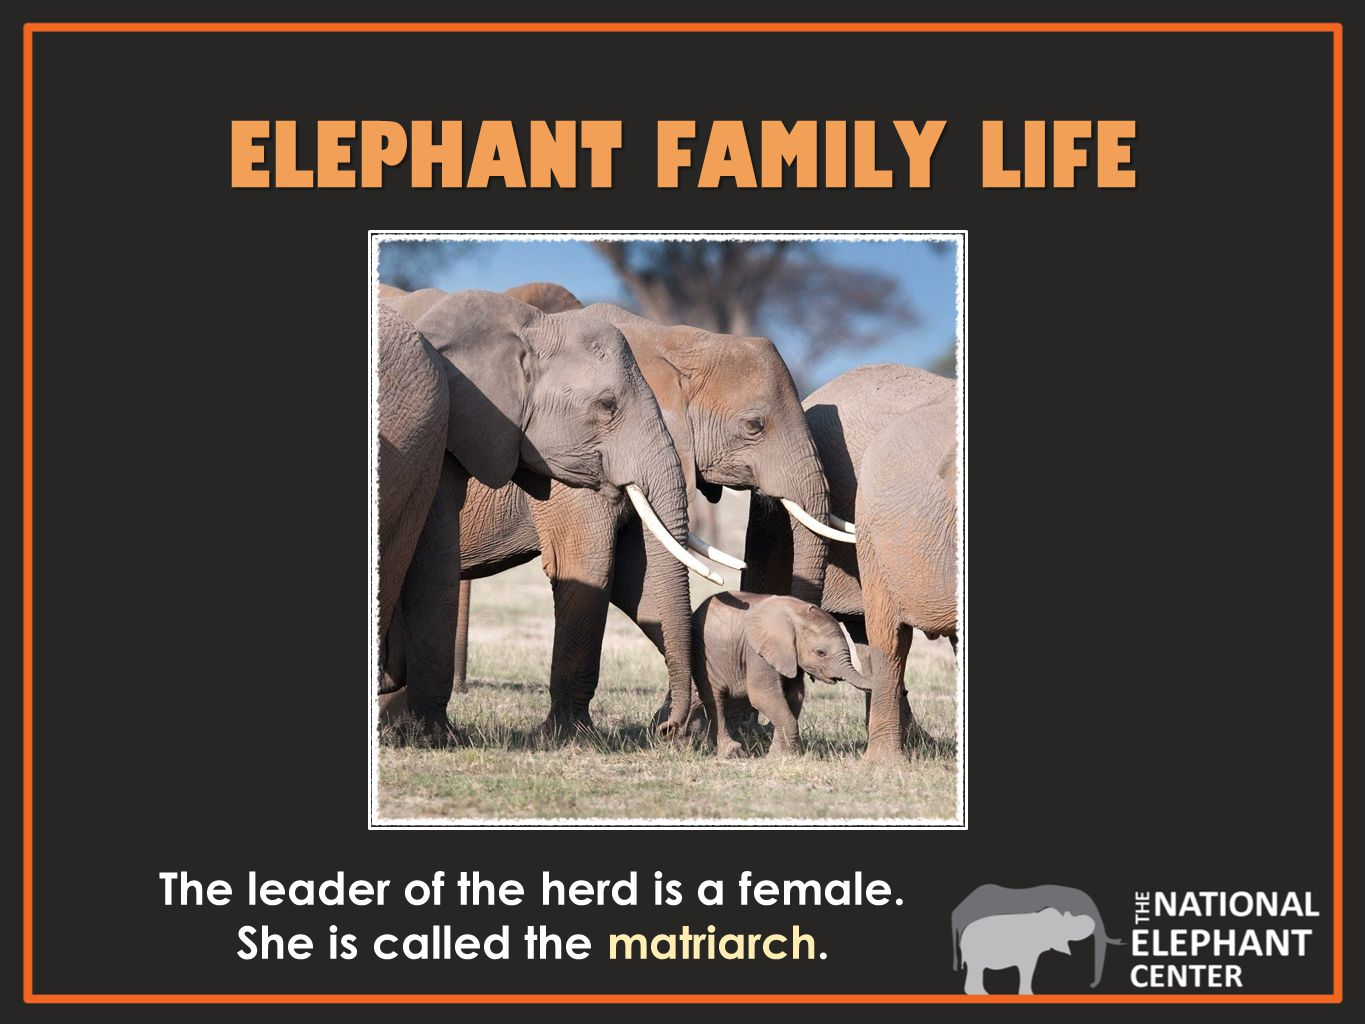 ELEPHANT FAMILY LIFE The leader of the herd is a female. She is called the matriarch.